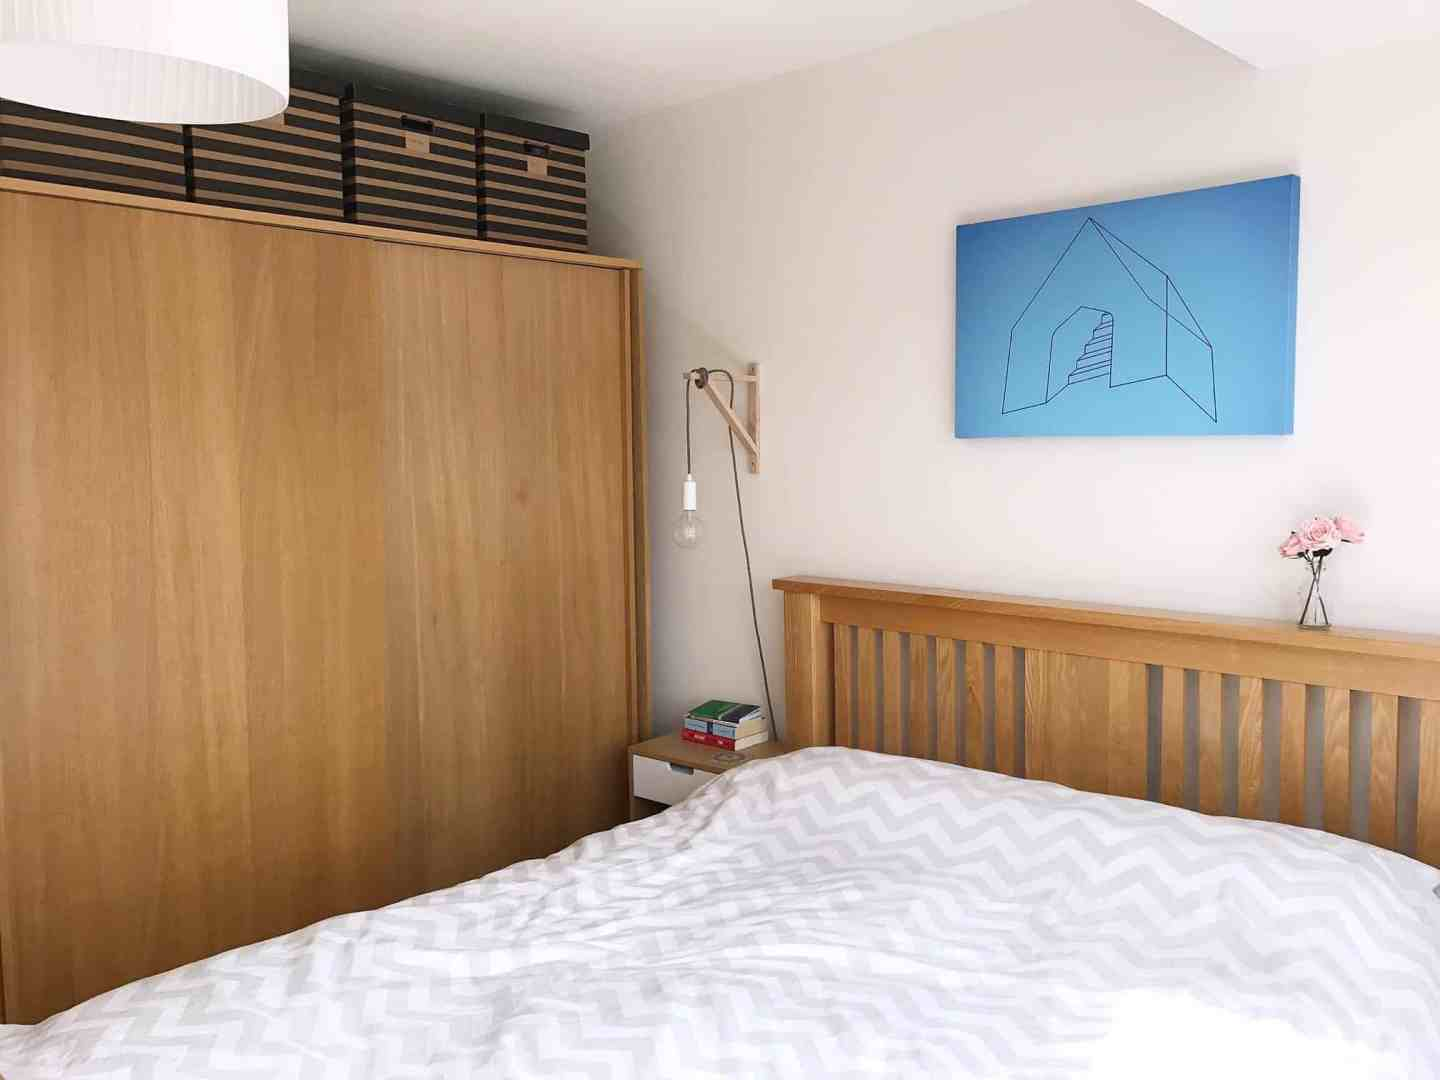 Laure wooden wardrobe and bed - miles away from a dream bedroom!